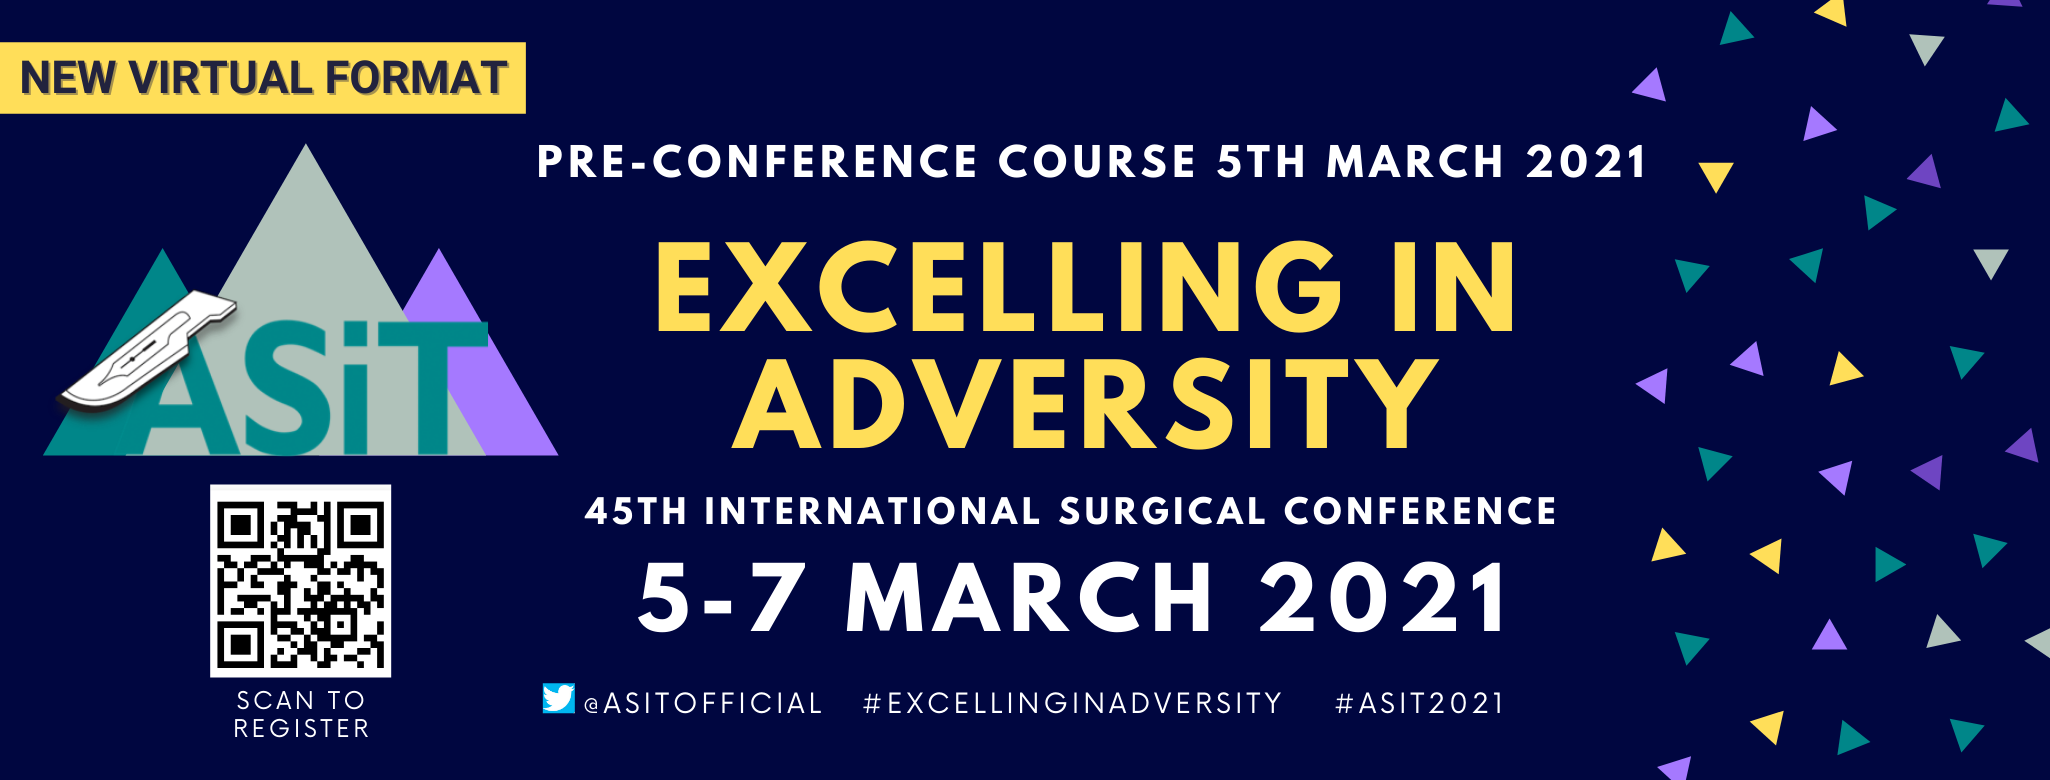 ASiT Annual Conference 2021 - Conference Programme Announced